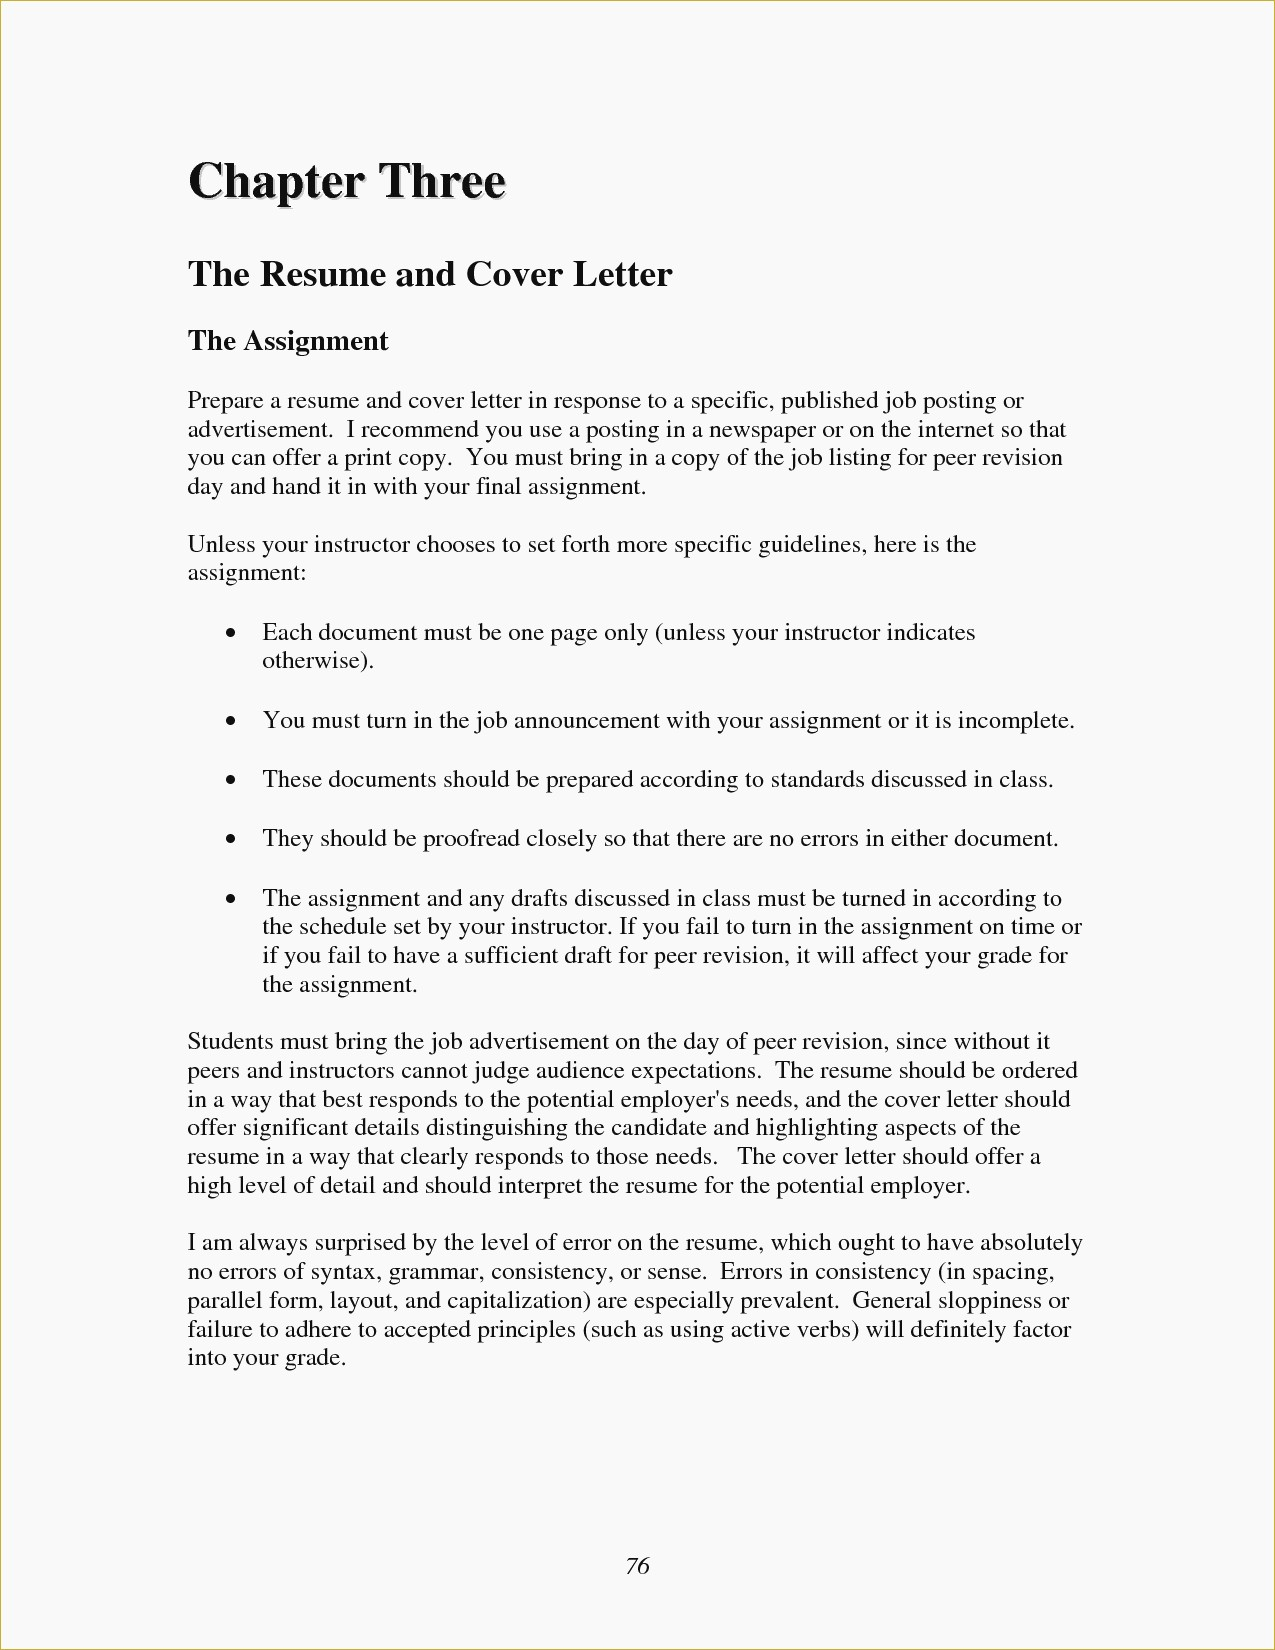 Offer Letter Template Google Docs - Best How to Use Templates In Google Docs